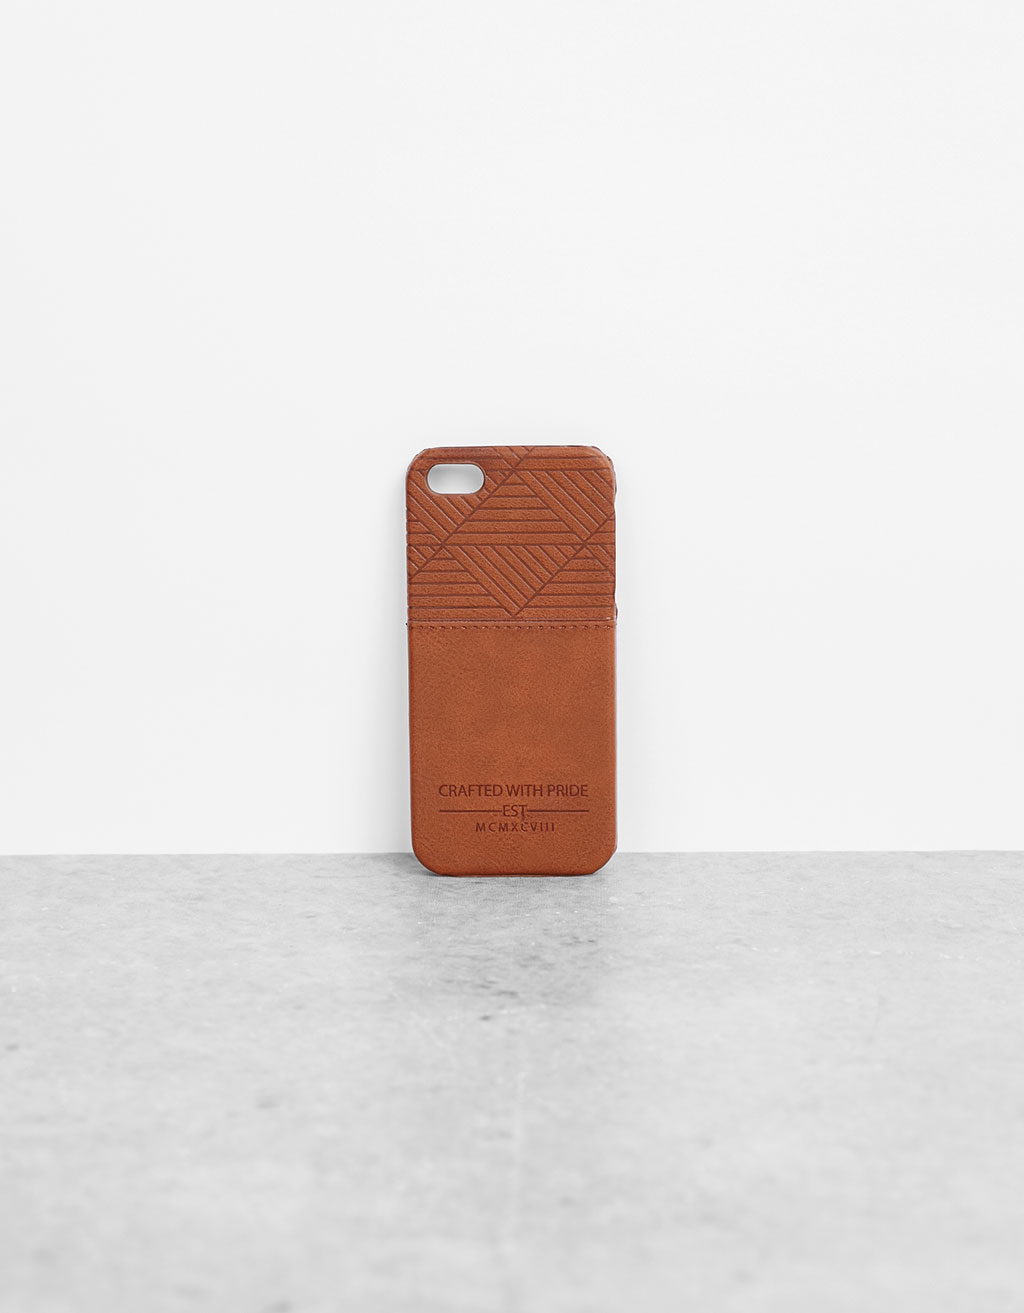 iPhone 5/5s geometric print case